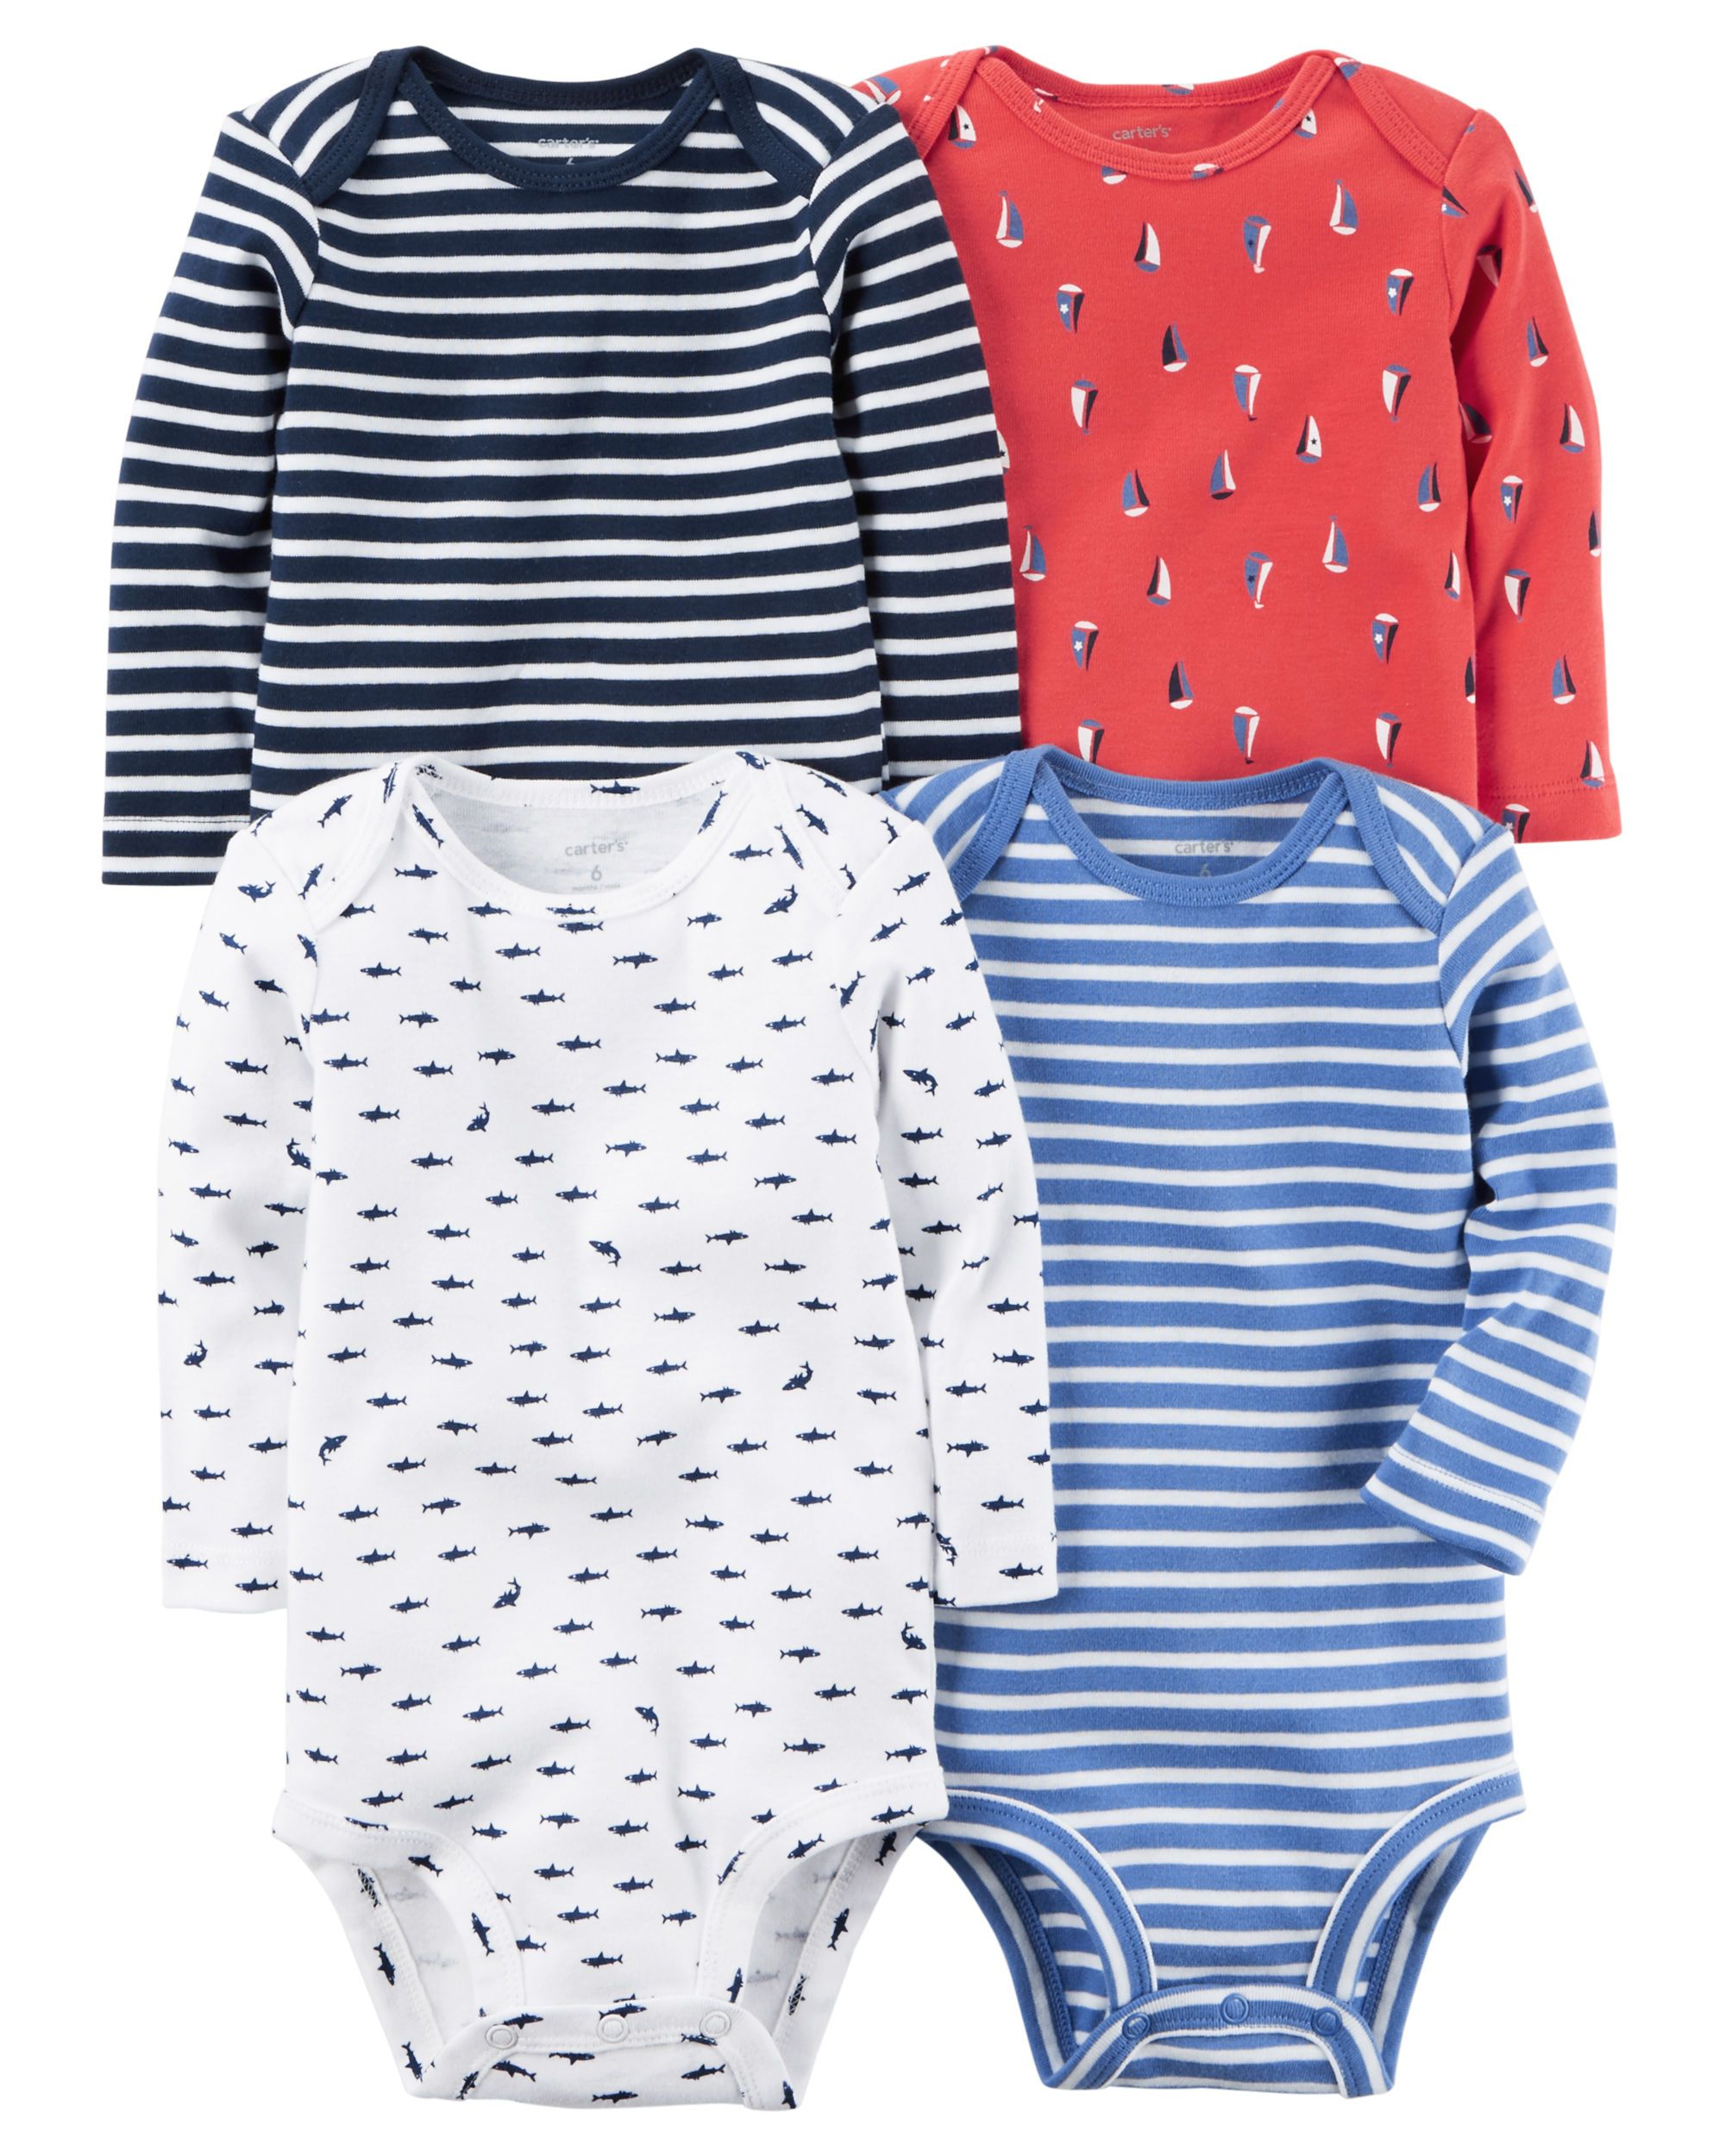 9b2549f24 Baby Boy 4-Pack Long-Sleeve Bodysuits from Carters.com. Shop clothing &  accessories from a trusted name in kids, toddlers, and baby clothes.